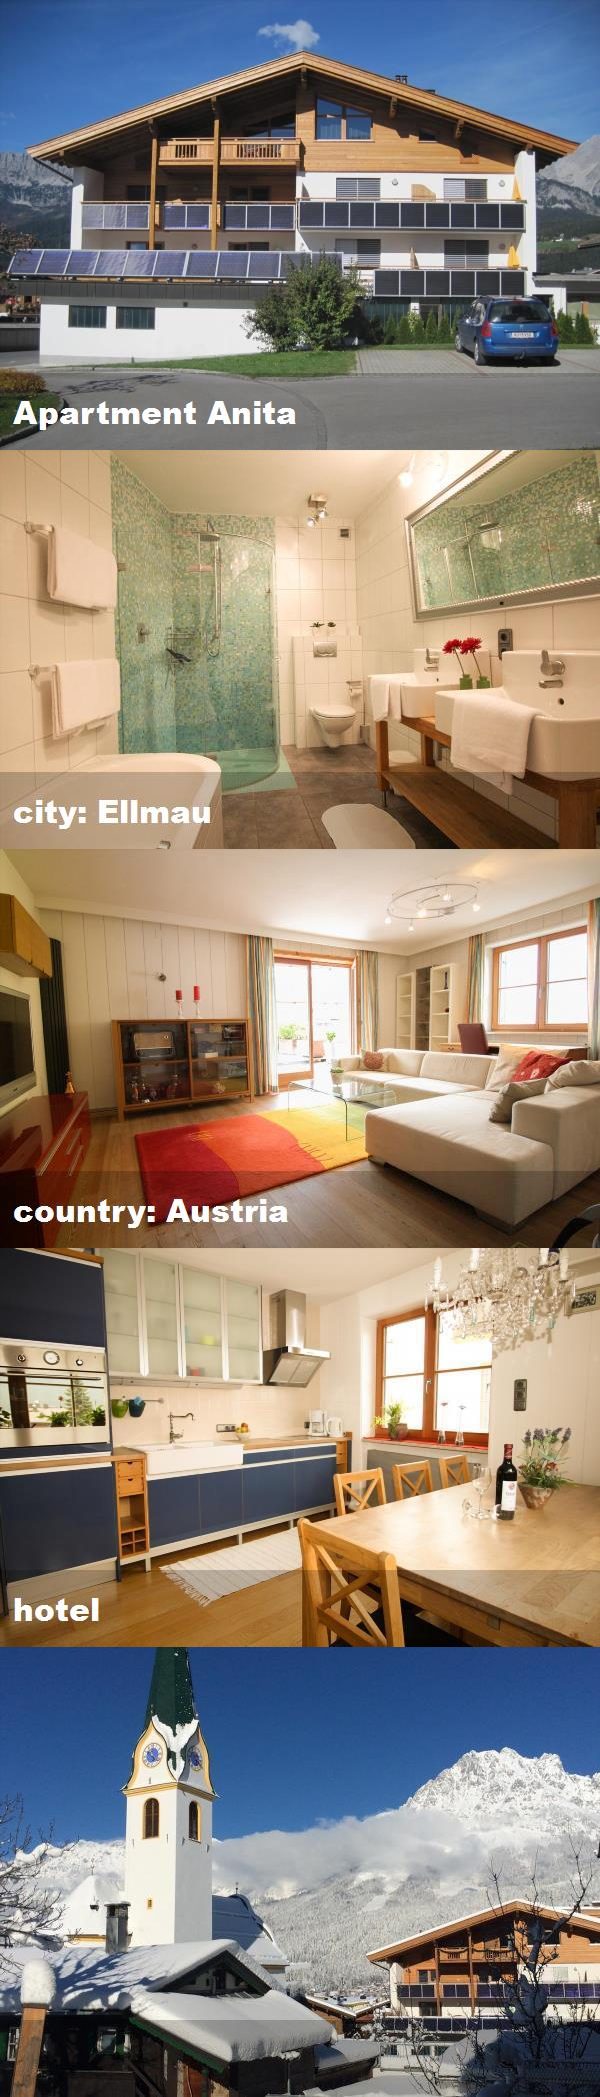 Apartment Anita, city Ellmau, country Austria, hotel